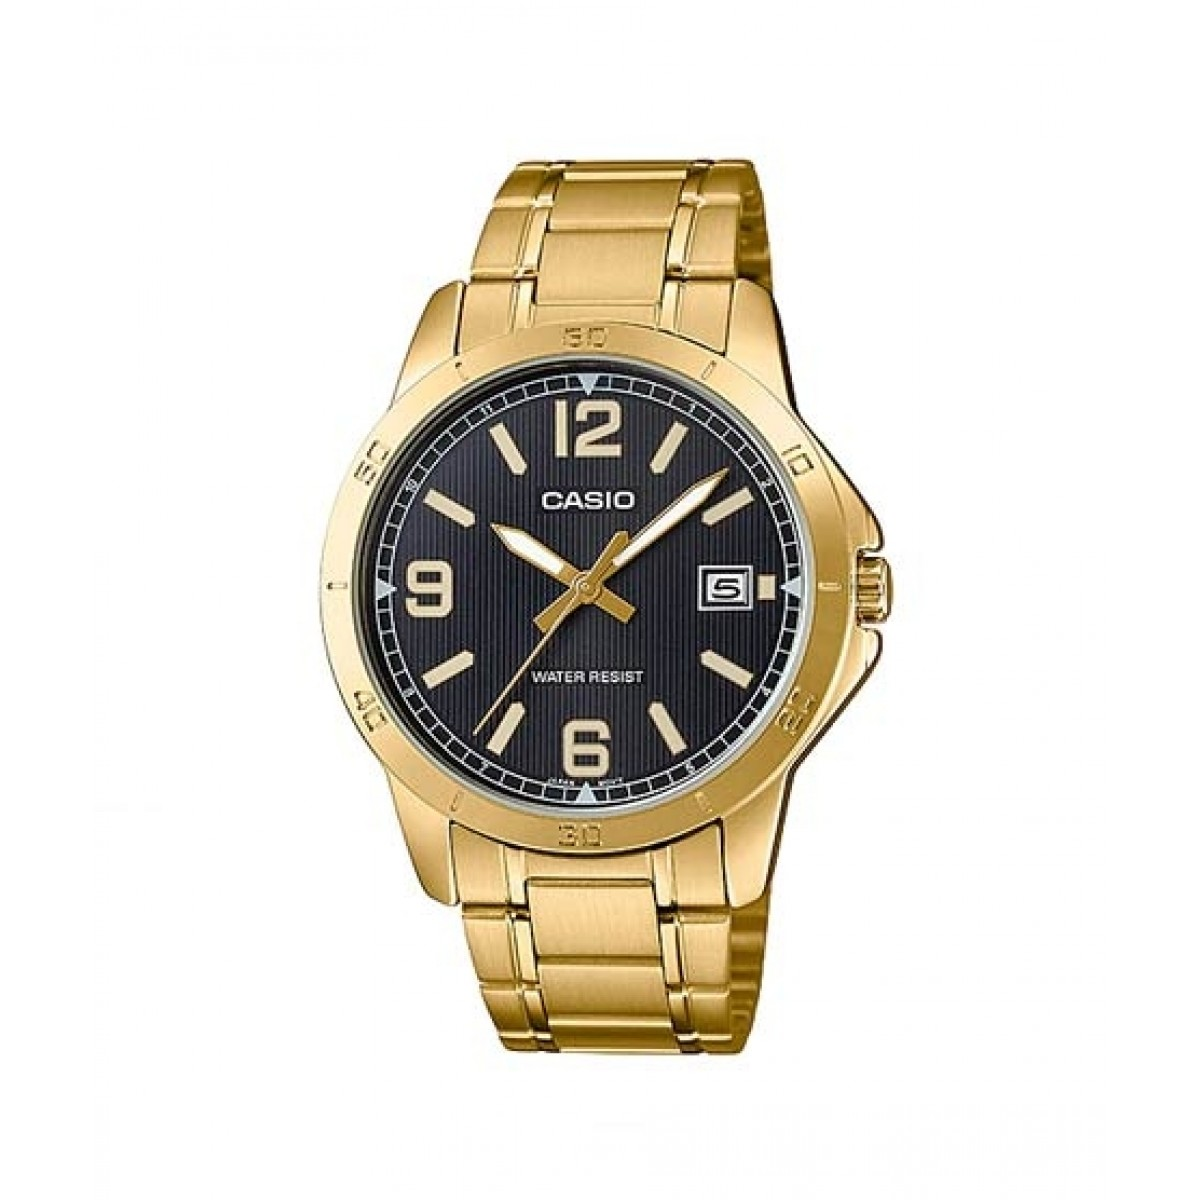 Casio Dress Analog Watch For Men (MTP-V004G-1BUDF)